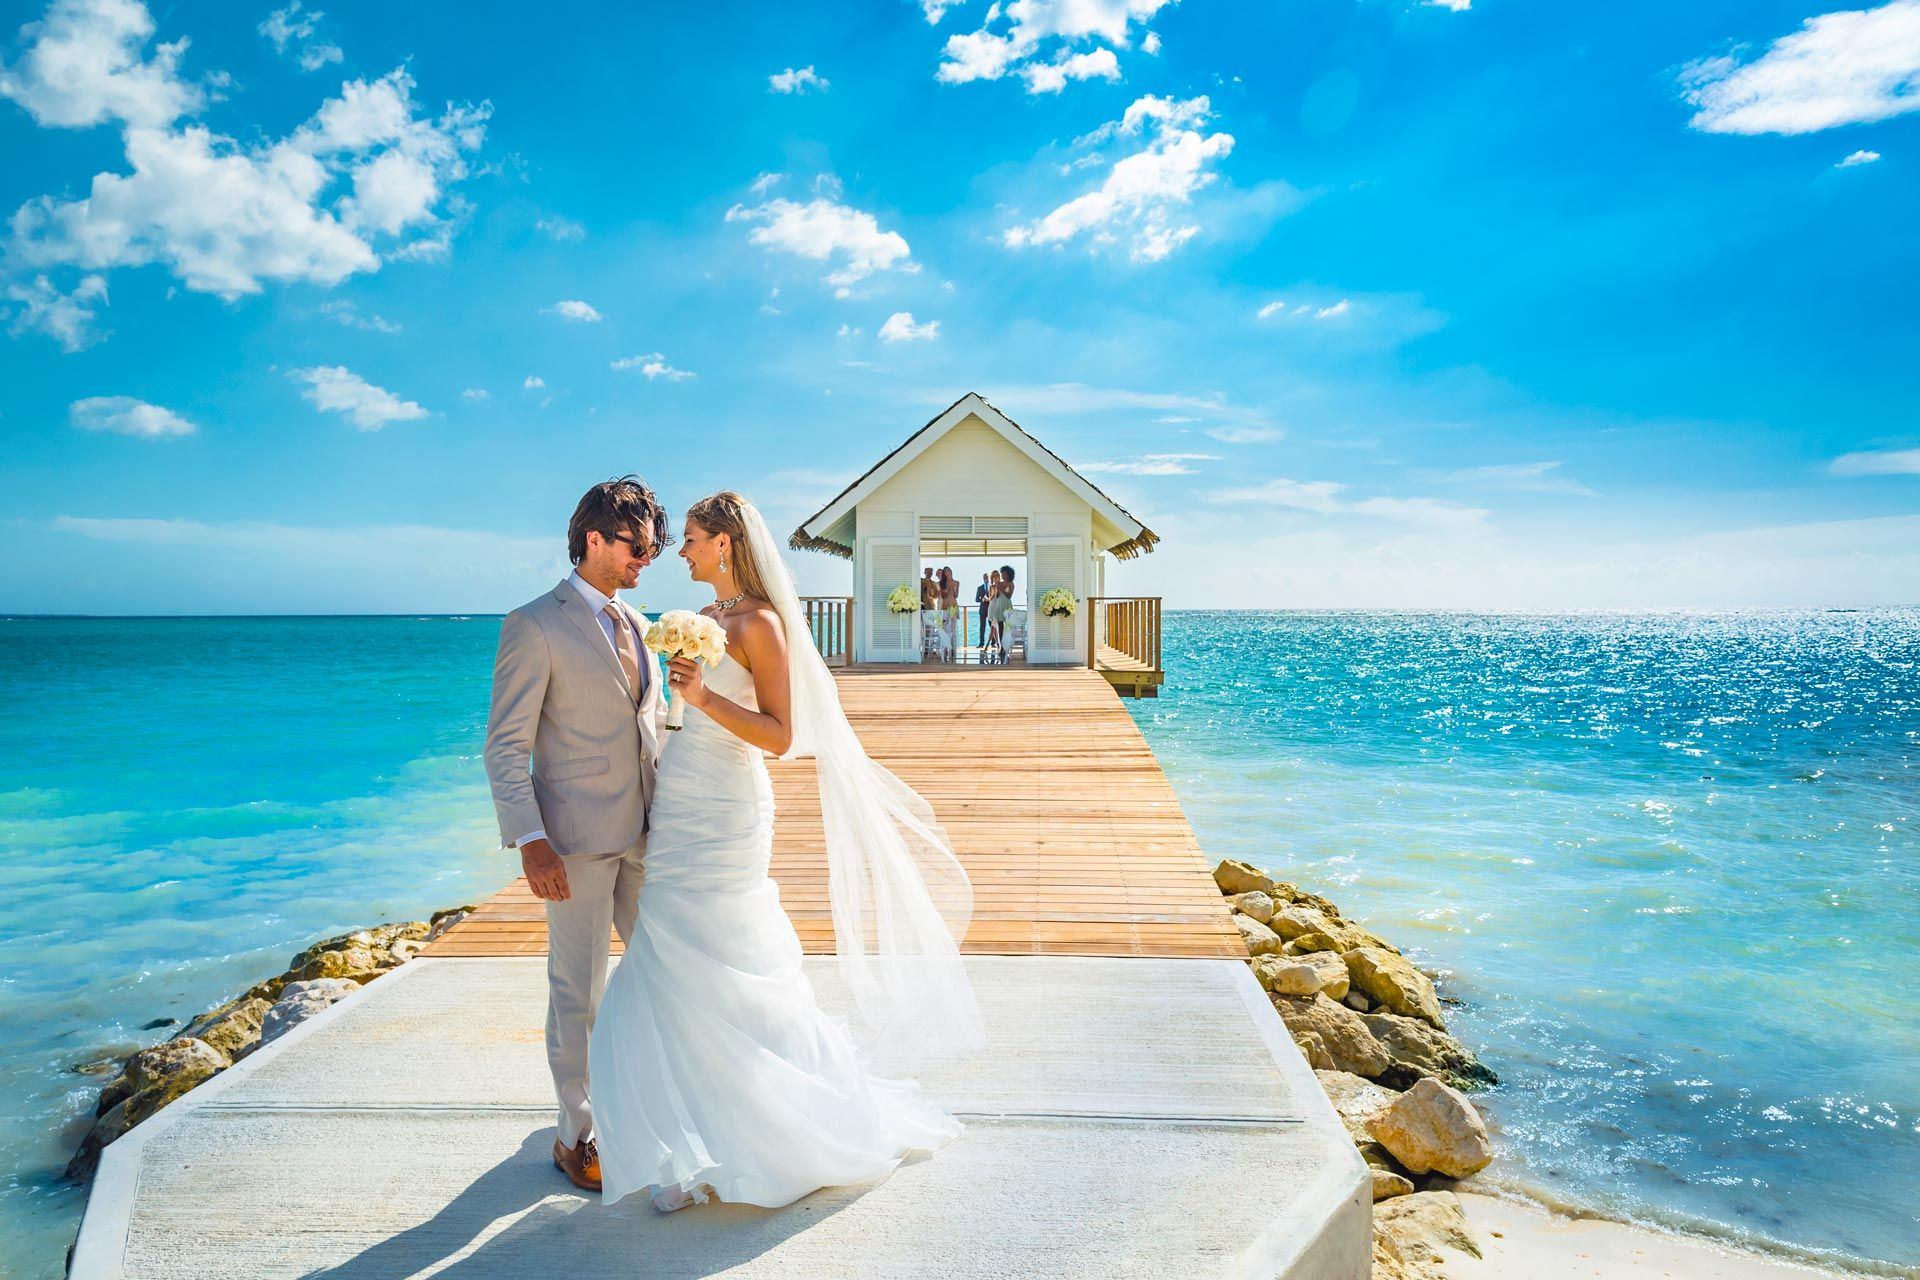 4-SWH_OWater_Chp_Wedding_012718